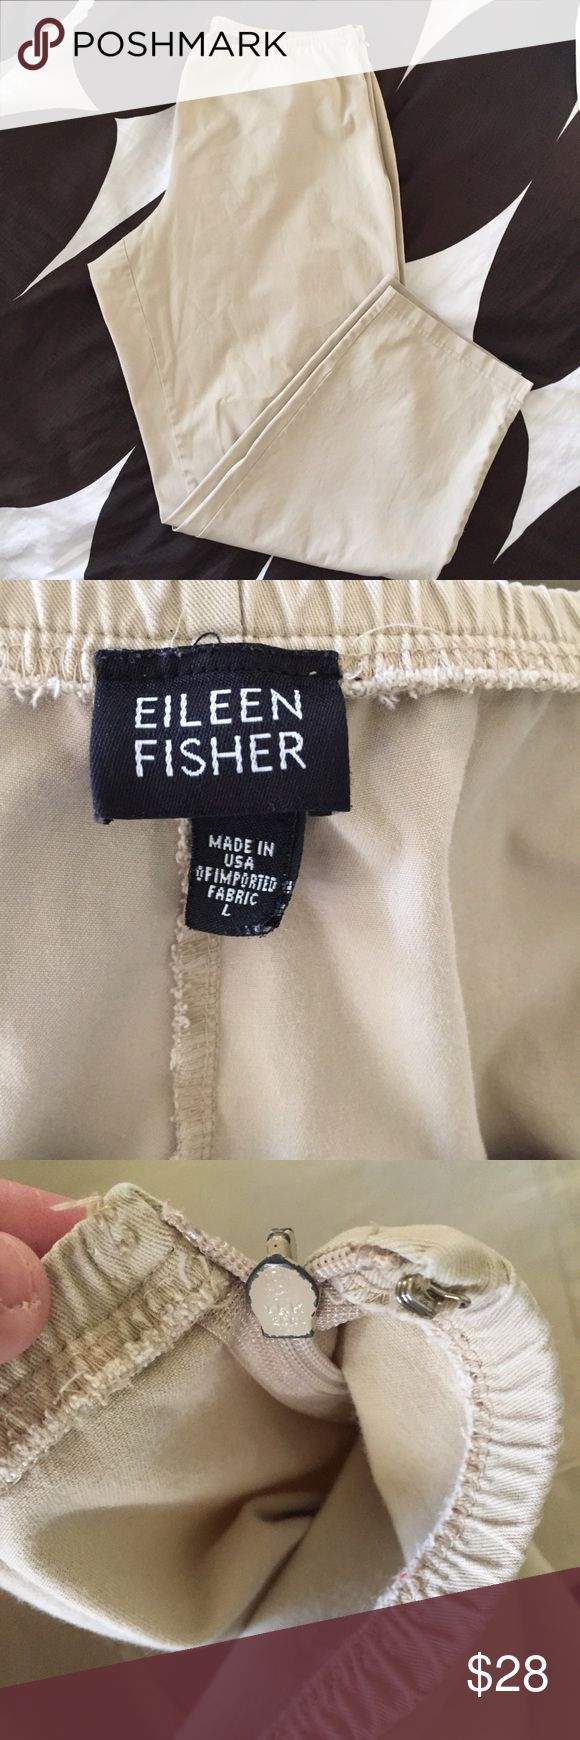 EILEEN FISHER Large Khaki Capri Crop Pants EILEEN FISHER Large Khaki Capri Crop Pants  Size: large No pockets  -Side zip closure but missing hook -Zipper is tarnished -black spots at the back of both legs (Please see photos)  Materials: 92% Cotton 8% Lycra  Measurements: Waist: 16in Hips: 22in Rise: 10in Inseam: 28.5in Length: 37in Eileen Fisher Pants Capris